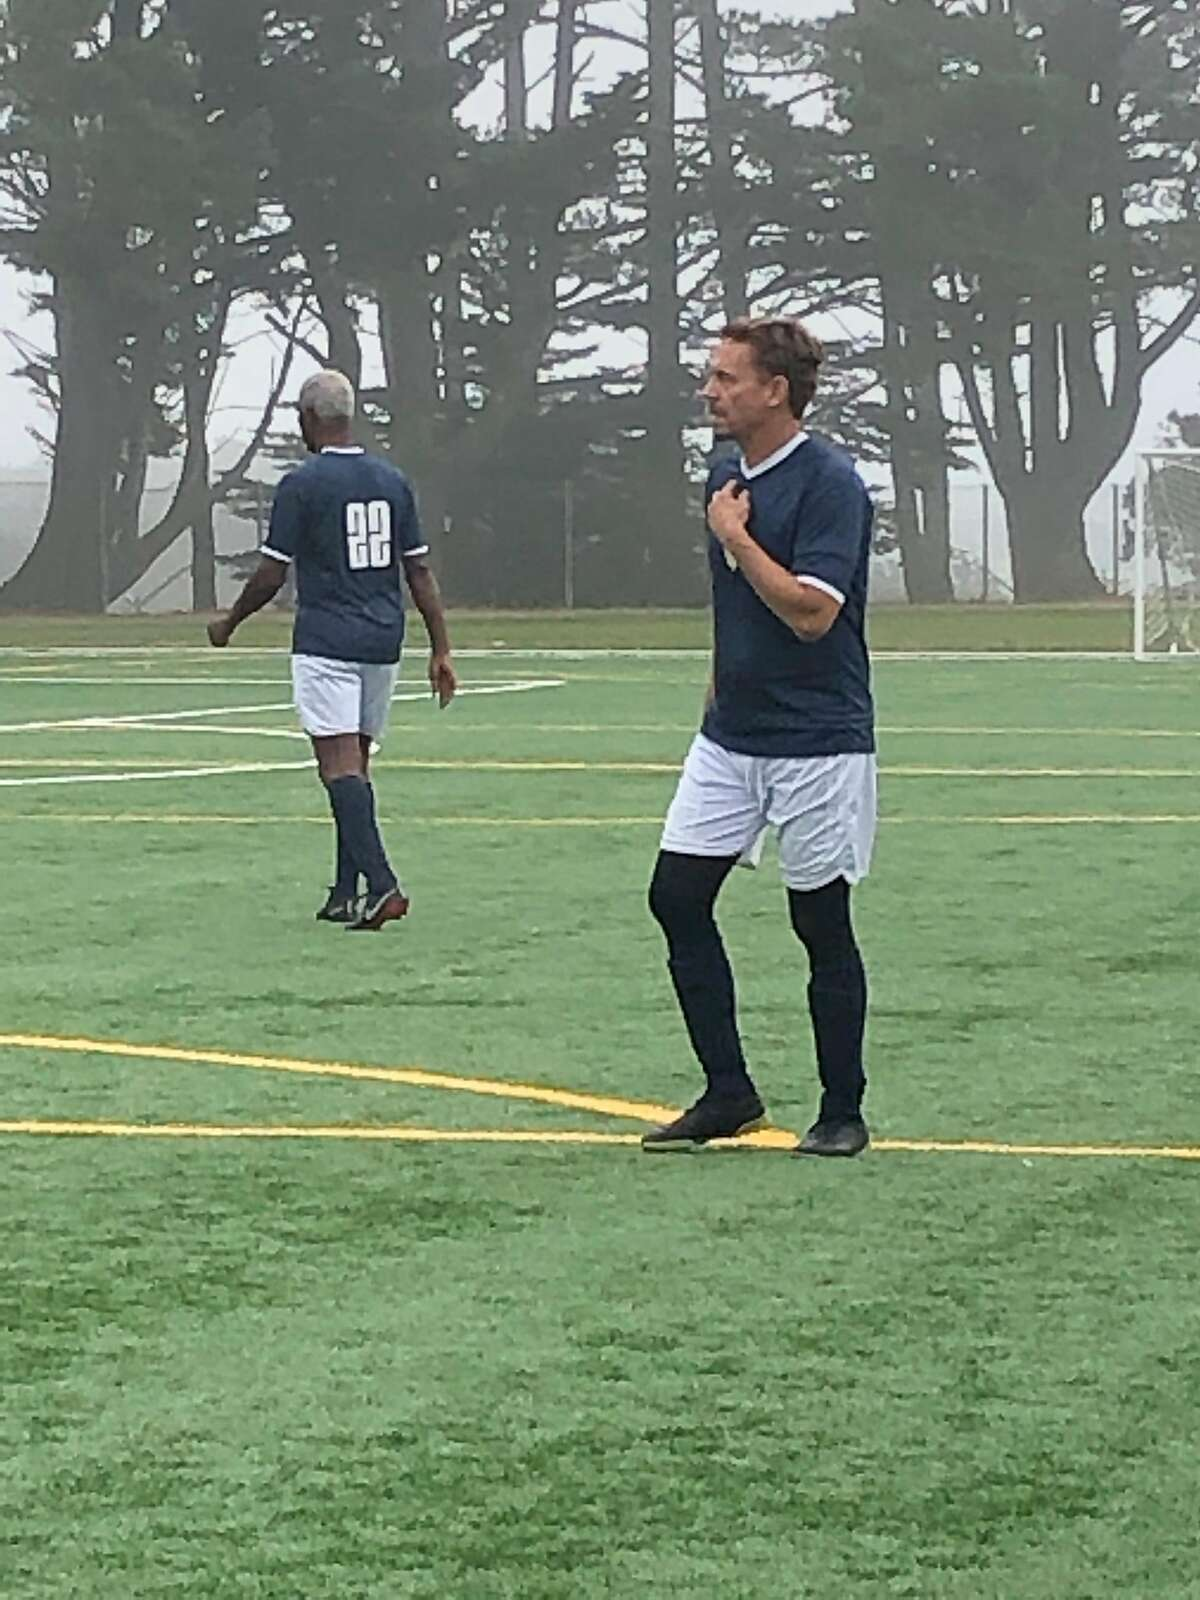 Dirk Denkers, a retired soccer player, now runs soccer tournaments for adults, like this one at Gellert Park in Daly City, Calif. on Aug. 24, 2019.